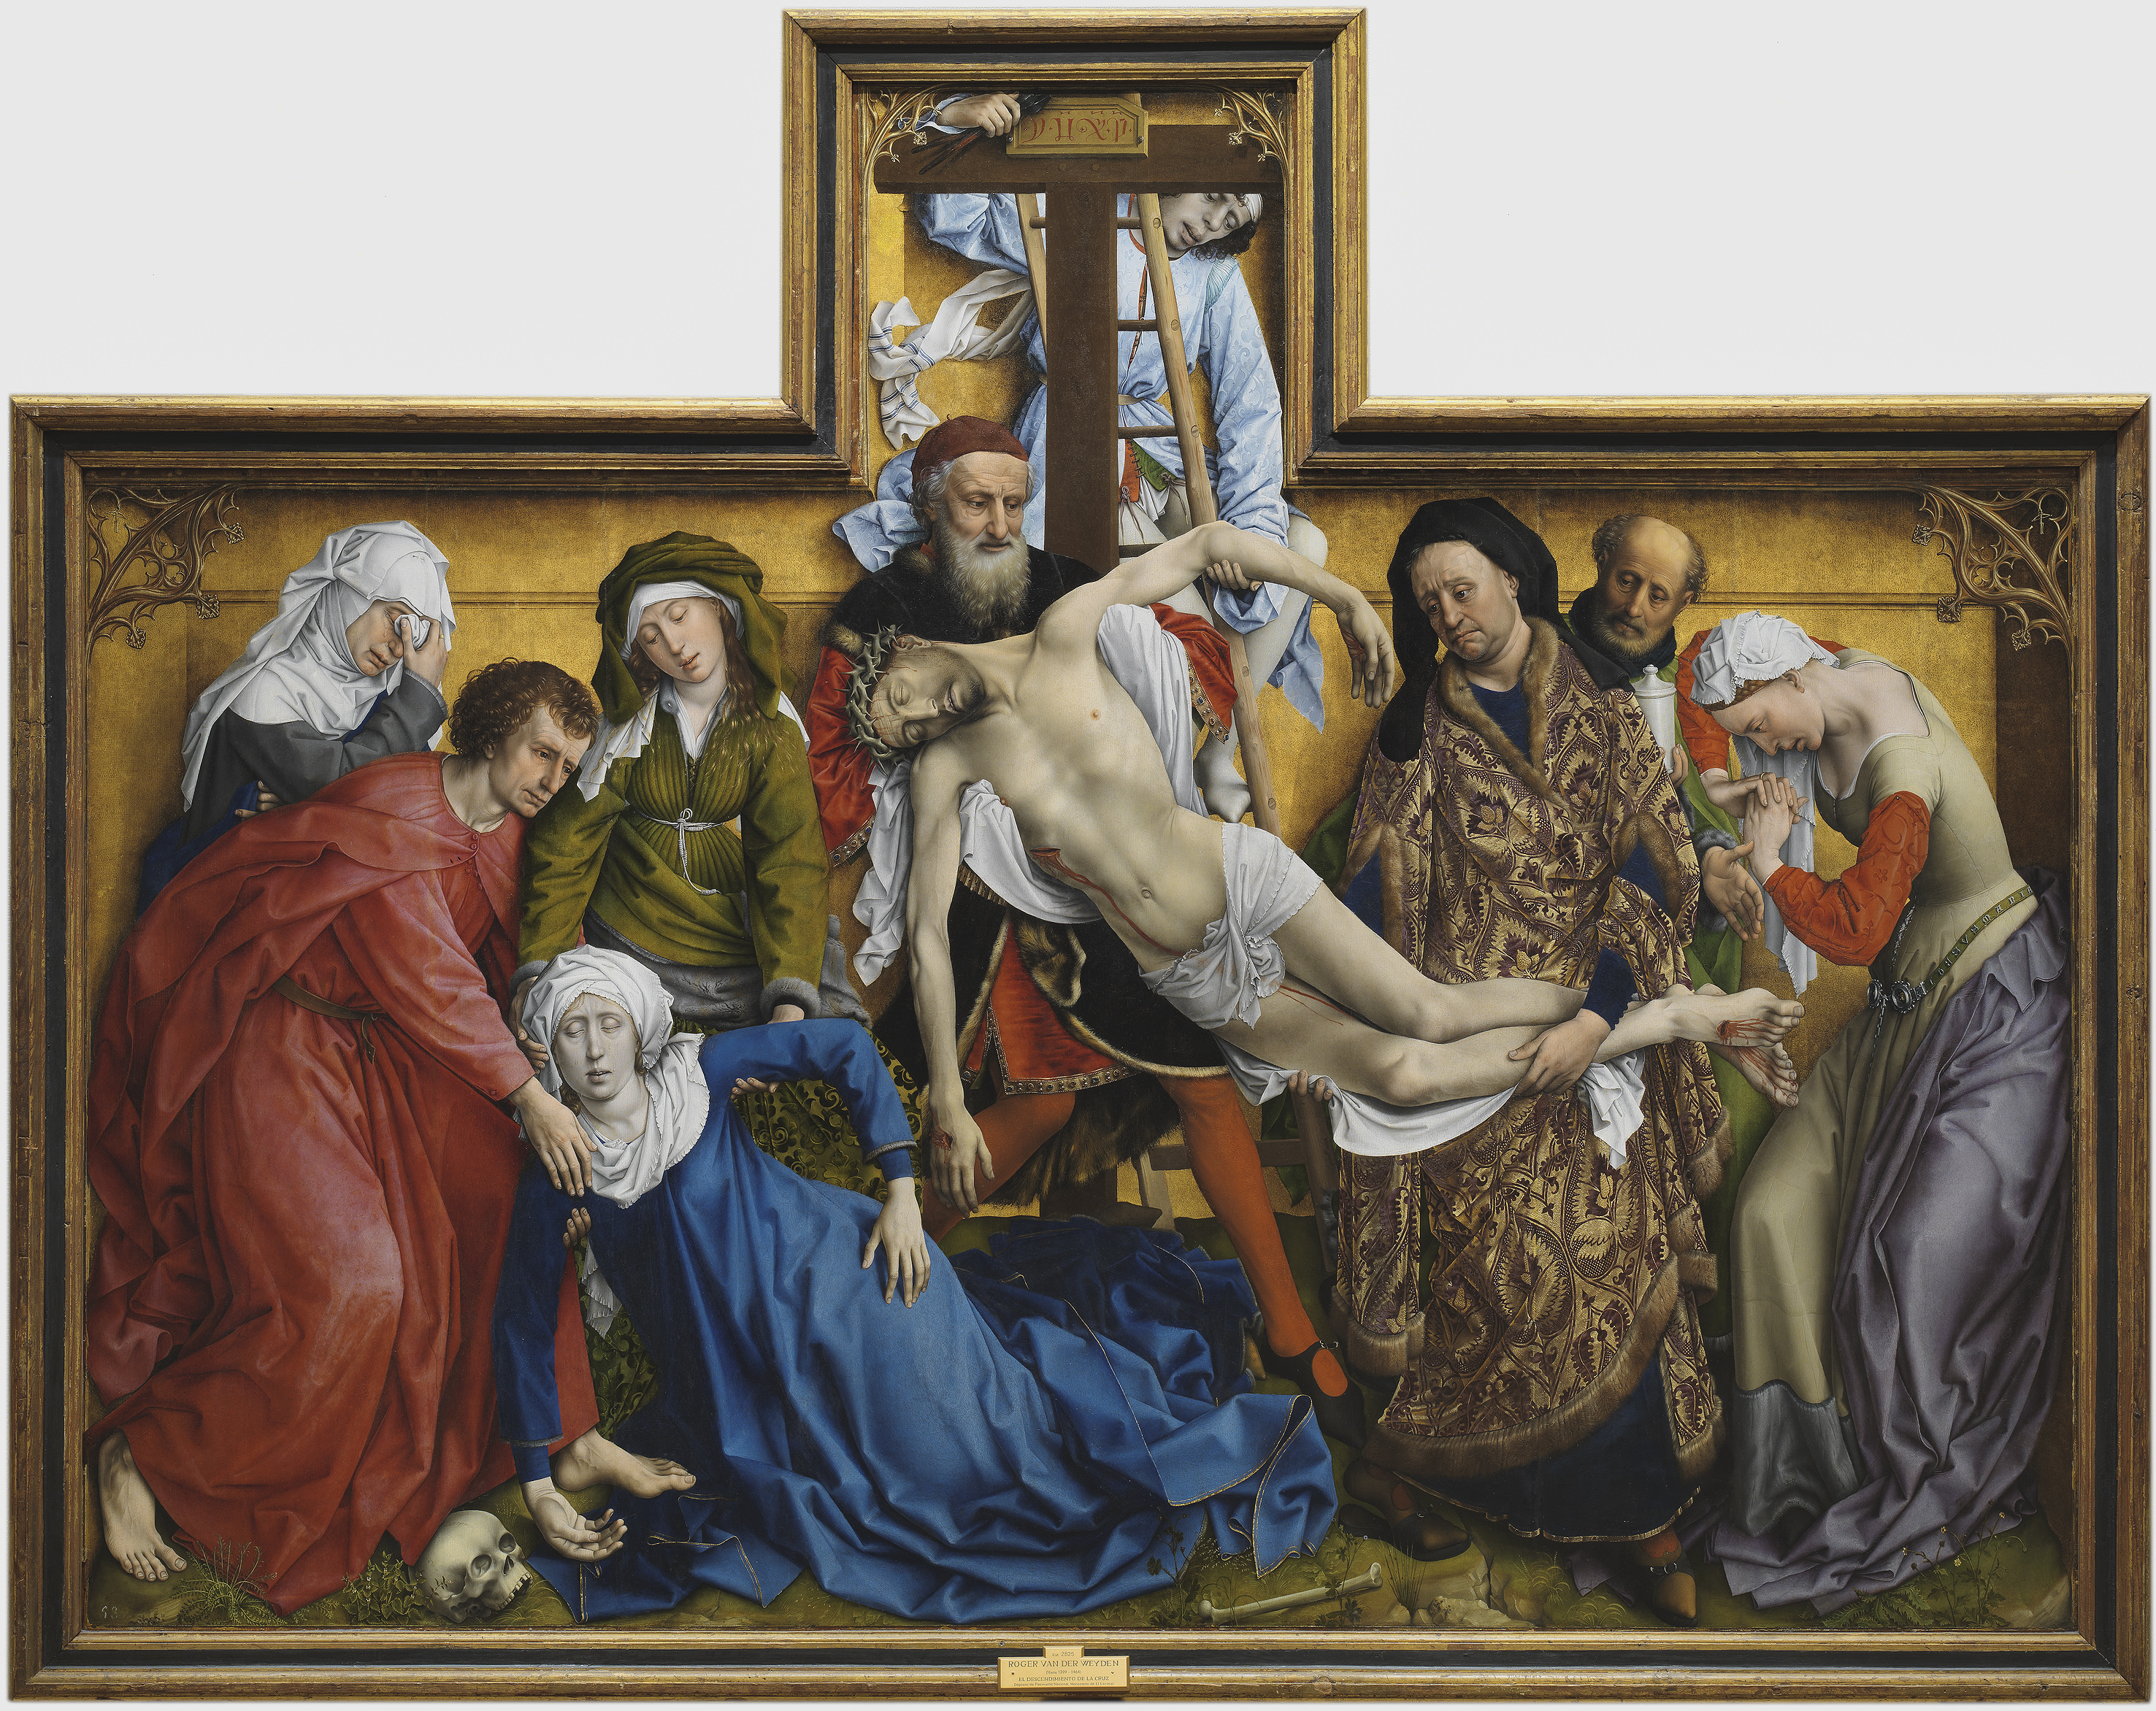 http://upload.wikimedia.org/wikipedia/commons/9/98/Weyden-descendimiento-prado-Ca-1435.jpg